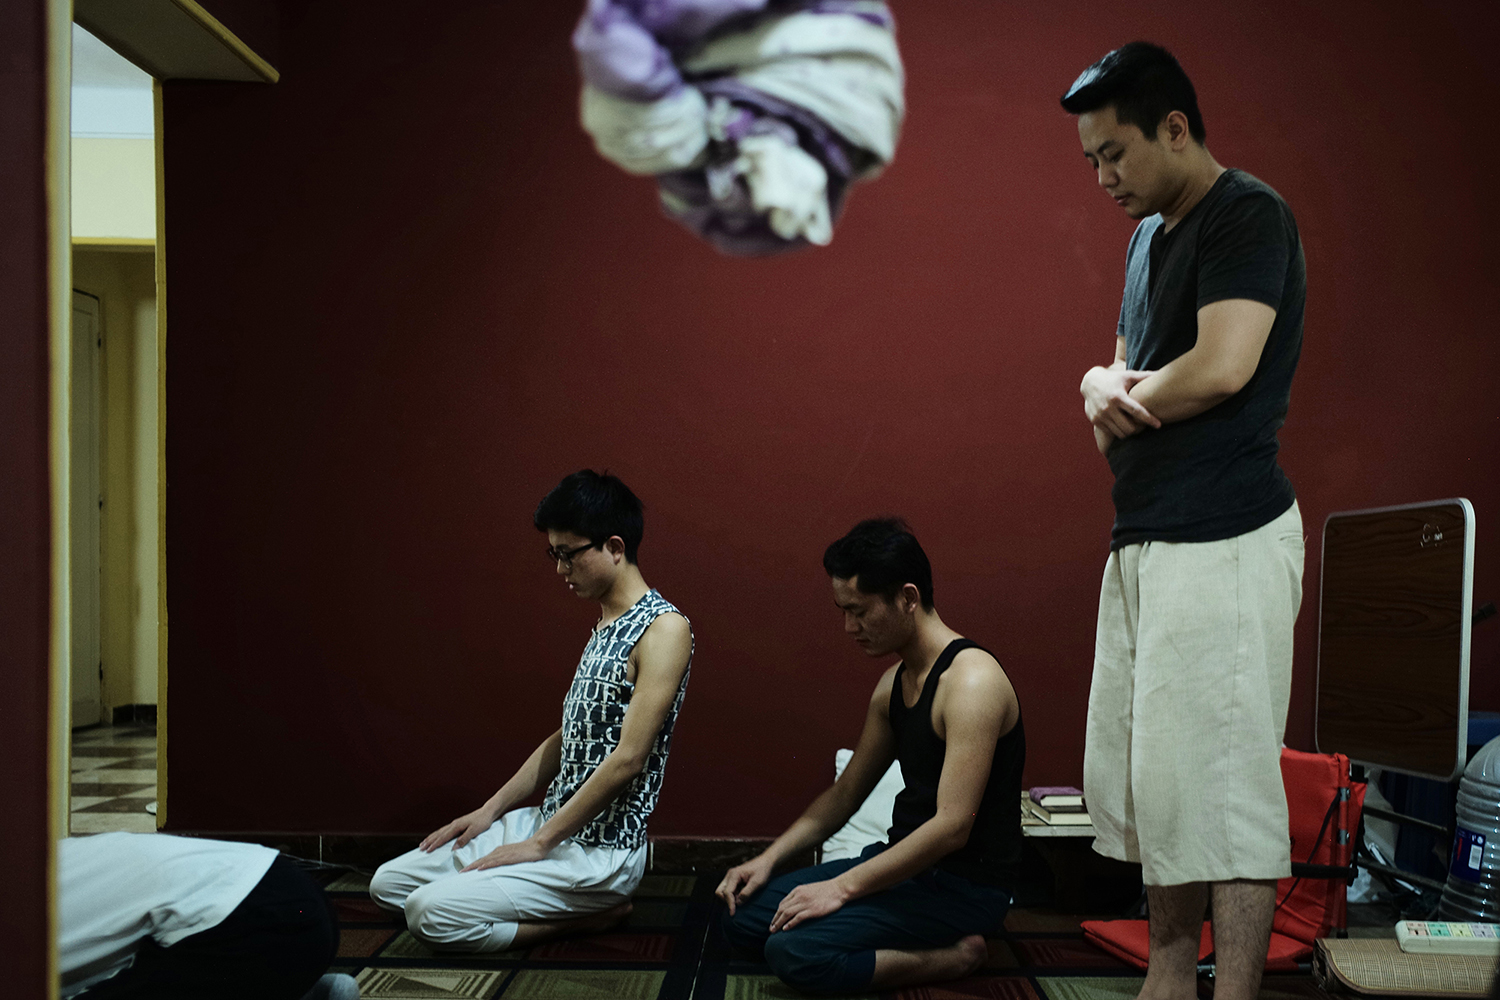 May 16, 19-year-old Eid (right), a member of the Muslim Hui minority, prays with his classmates, who are also Chinese Muslims, at an apartment they rent together in Cairo, Egypt. Eid studies at Al-Azhar University in a program that prepares students for college. He rarely returns to China because he worries he might not be allowed to leave the country again. This year, China launched a campaign to repatriate and interrogate Muslims studying overseas. (Li)